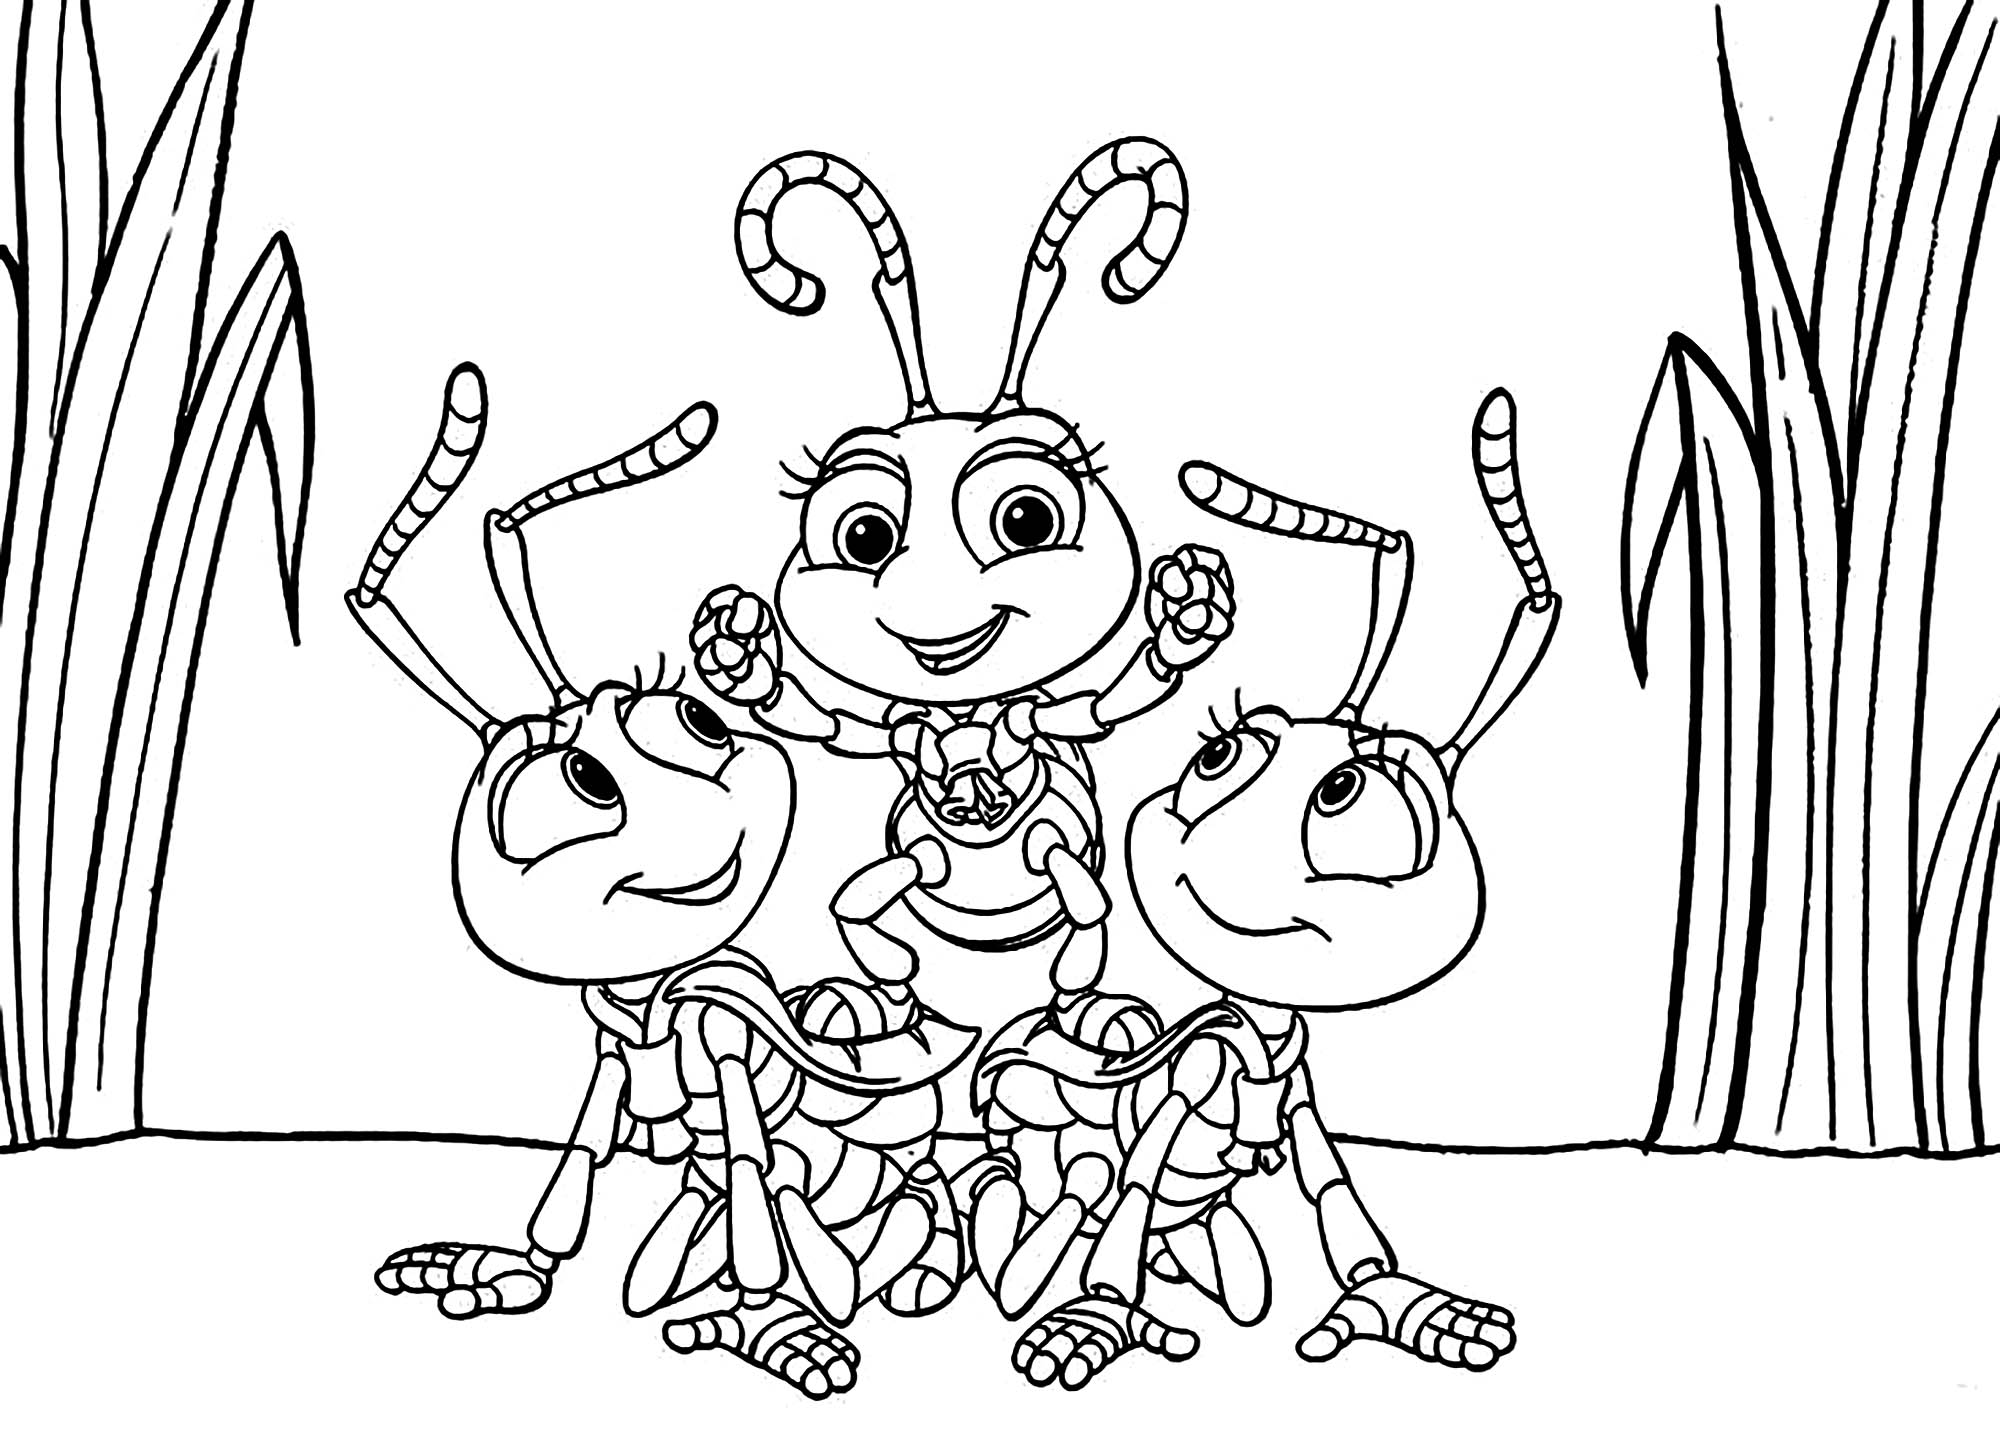 insect coloring sheets free printable bug coloring pages for kids insect coloring sheets